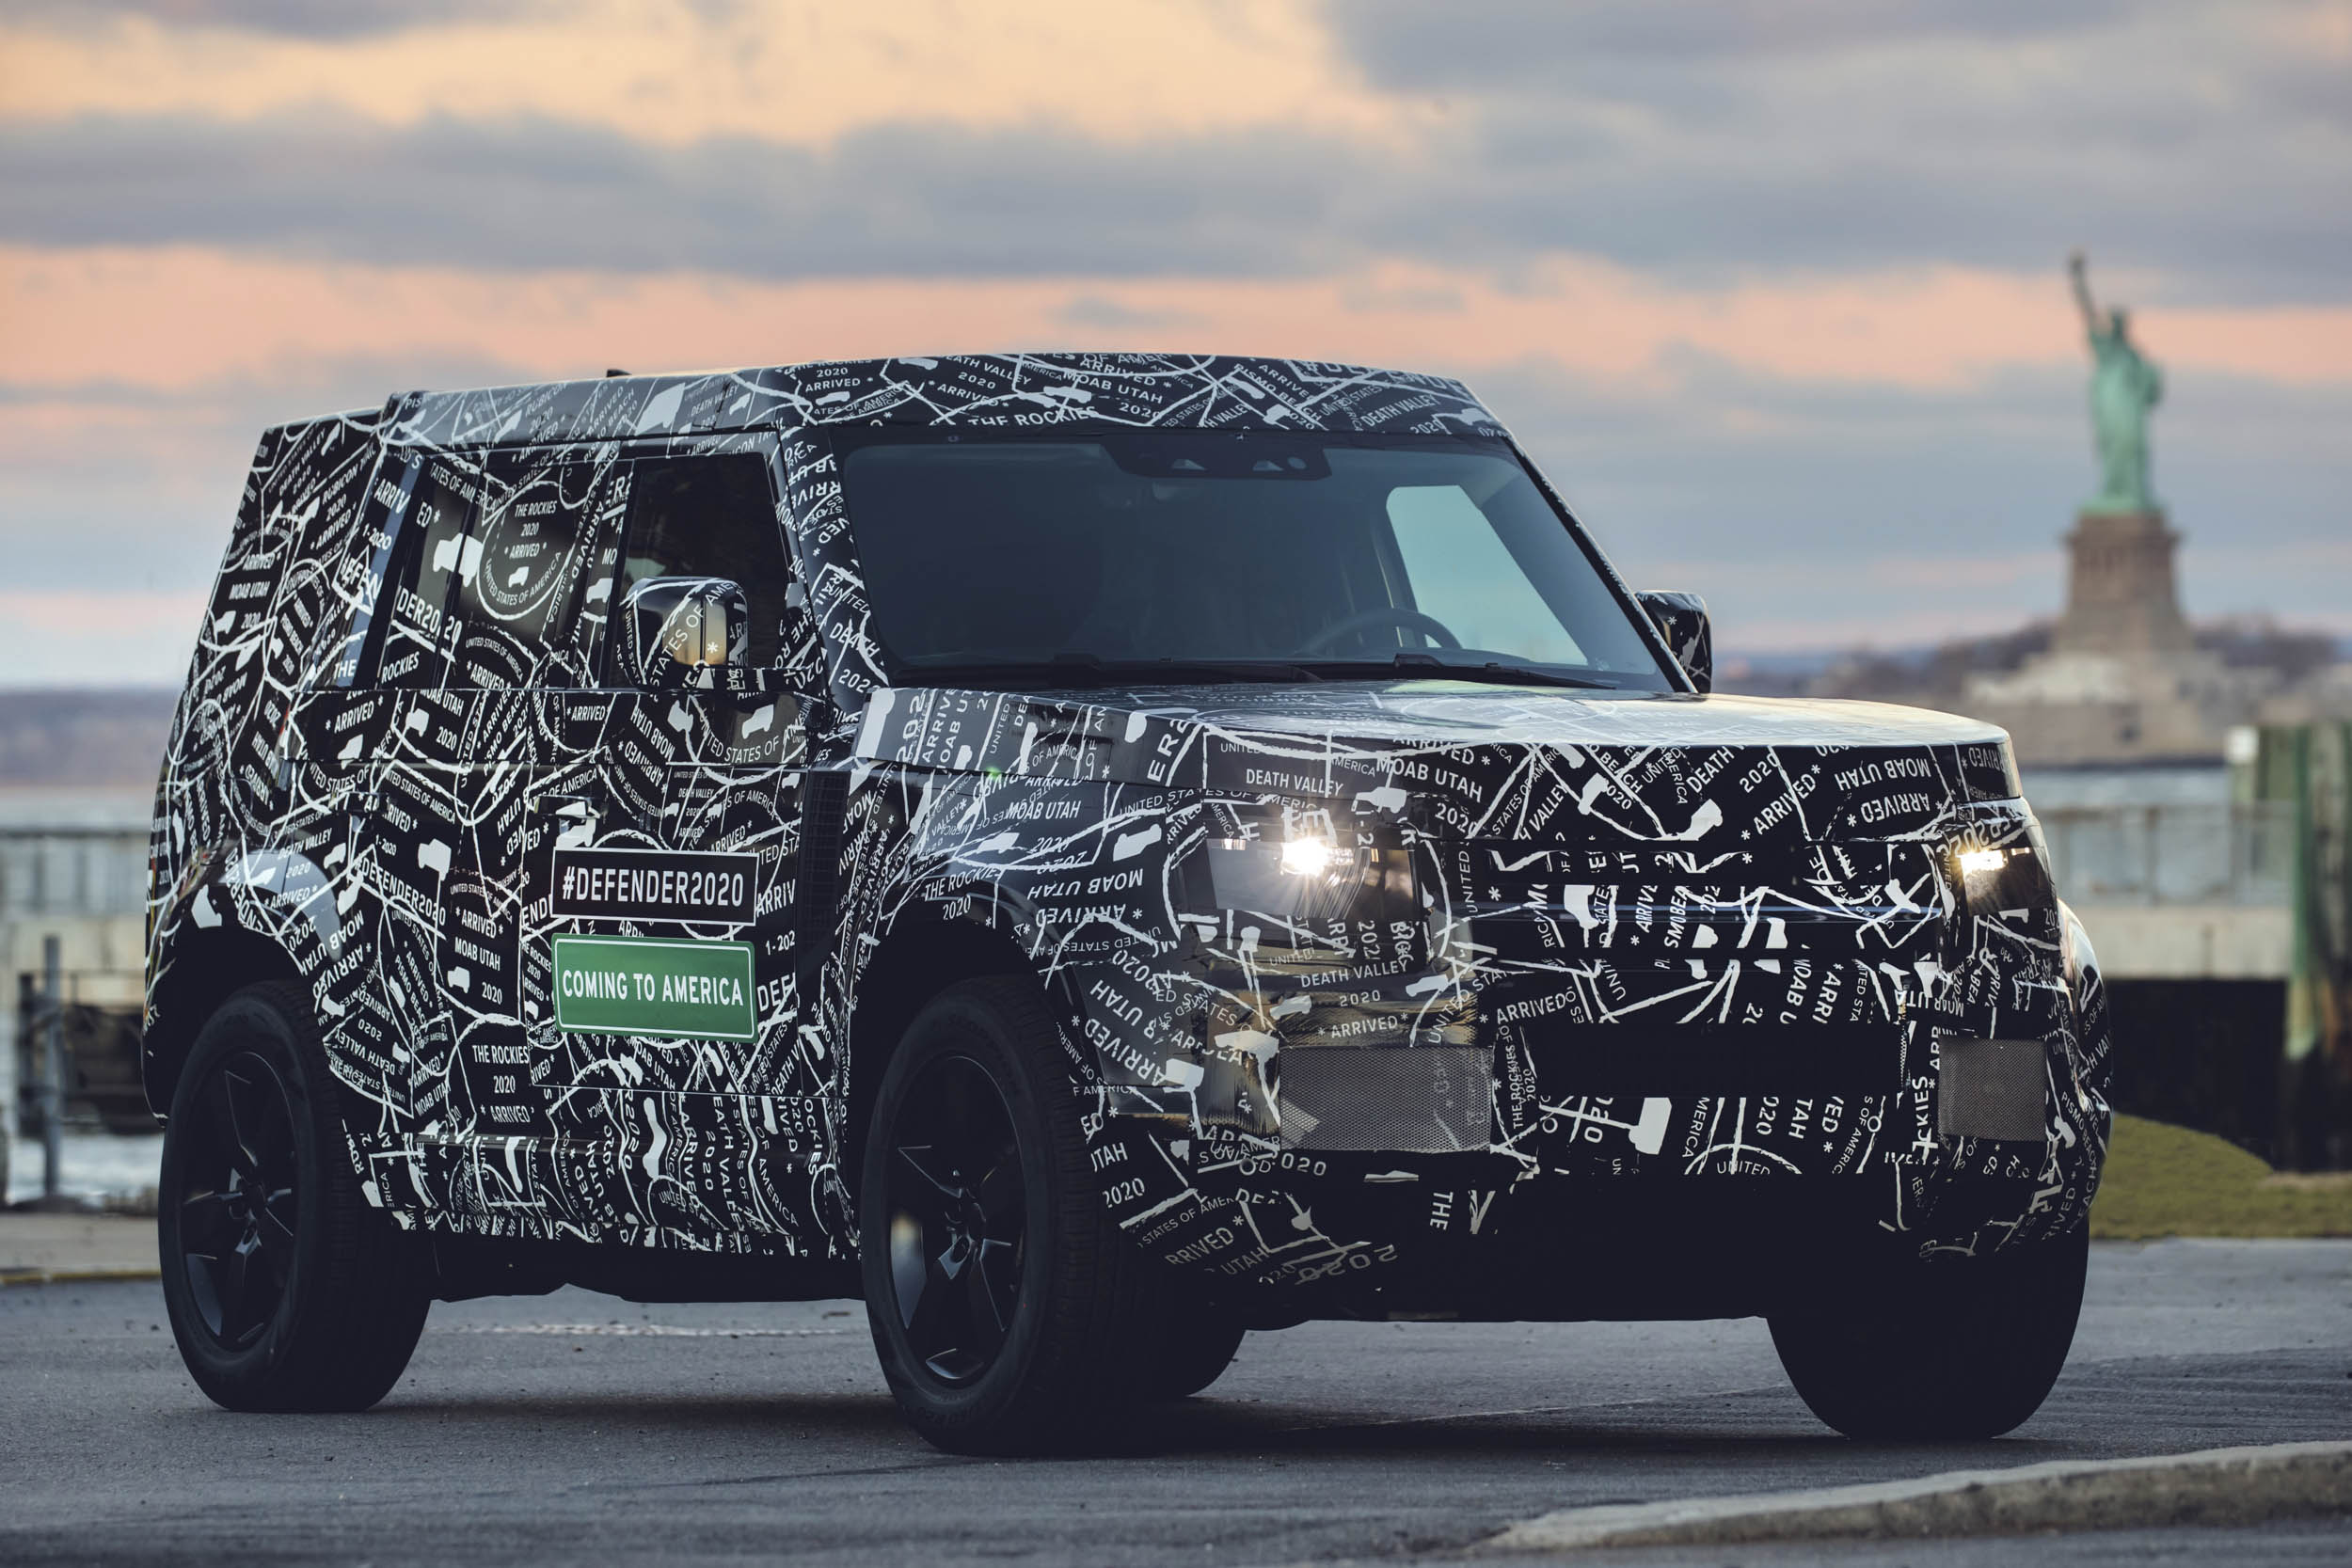 2020 Land Rover Defender front 3/4 in front of the Statue of Liberty